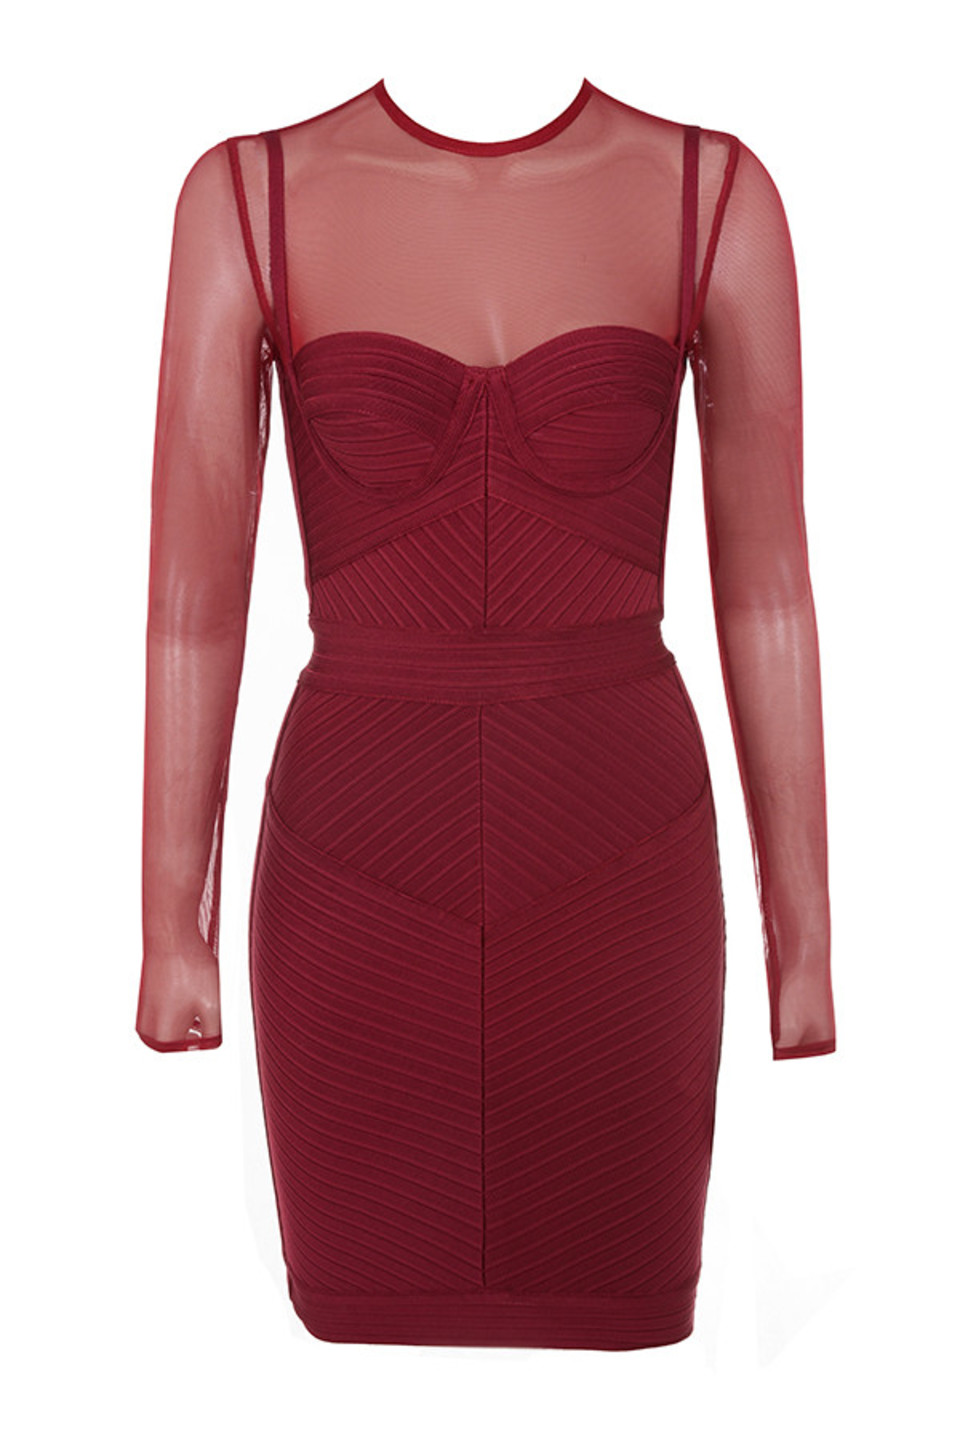 Noelle Wine Bandage Mesh Dress